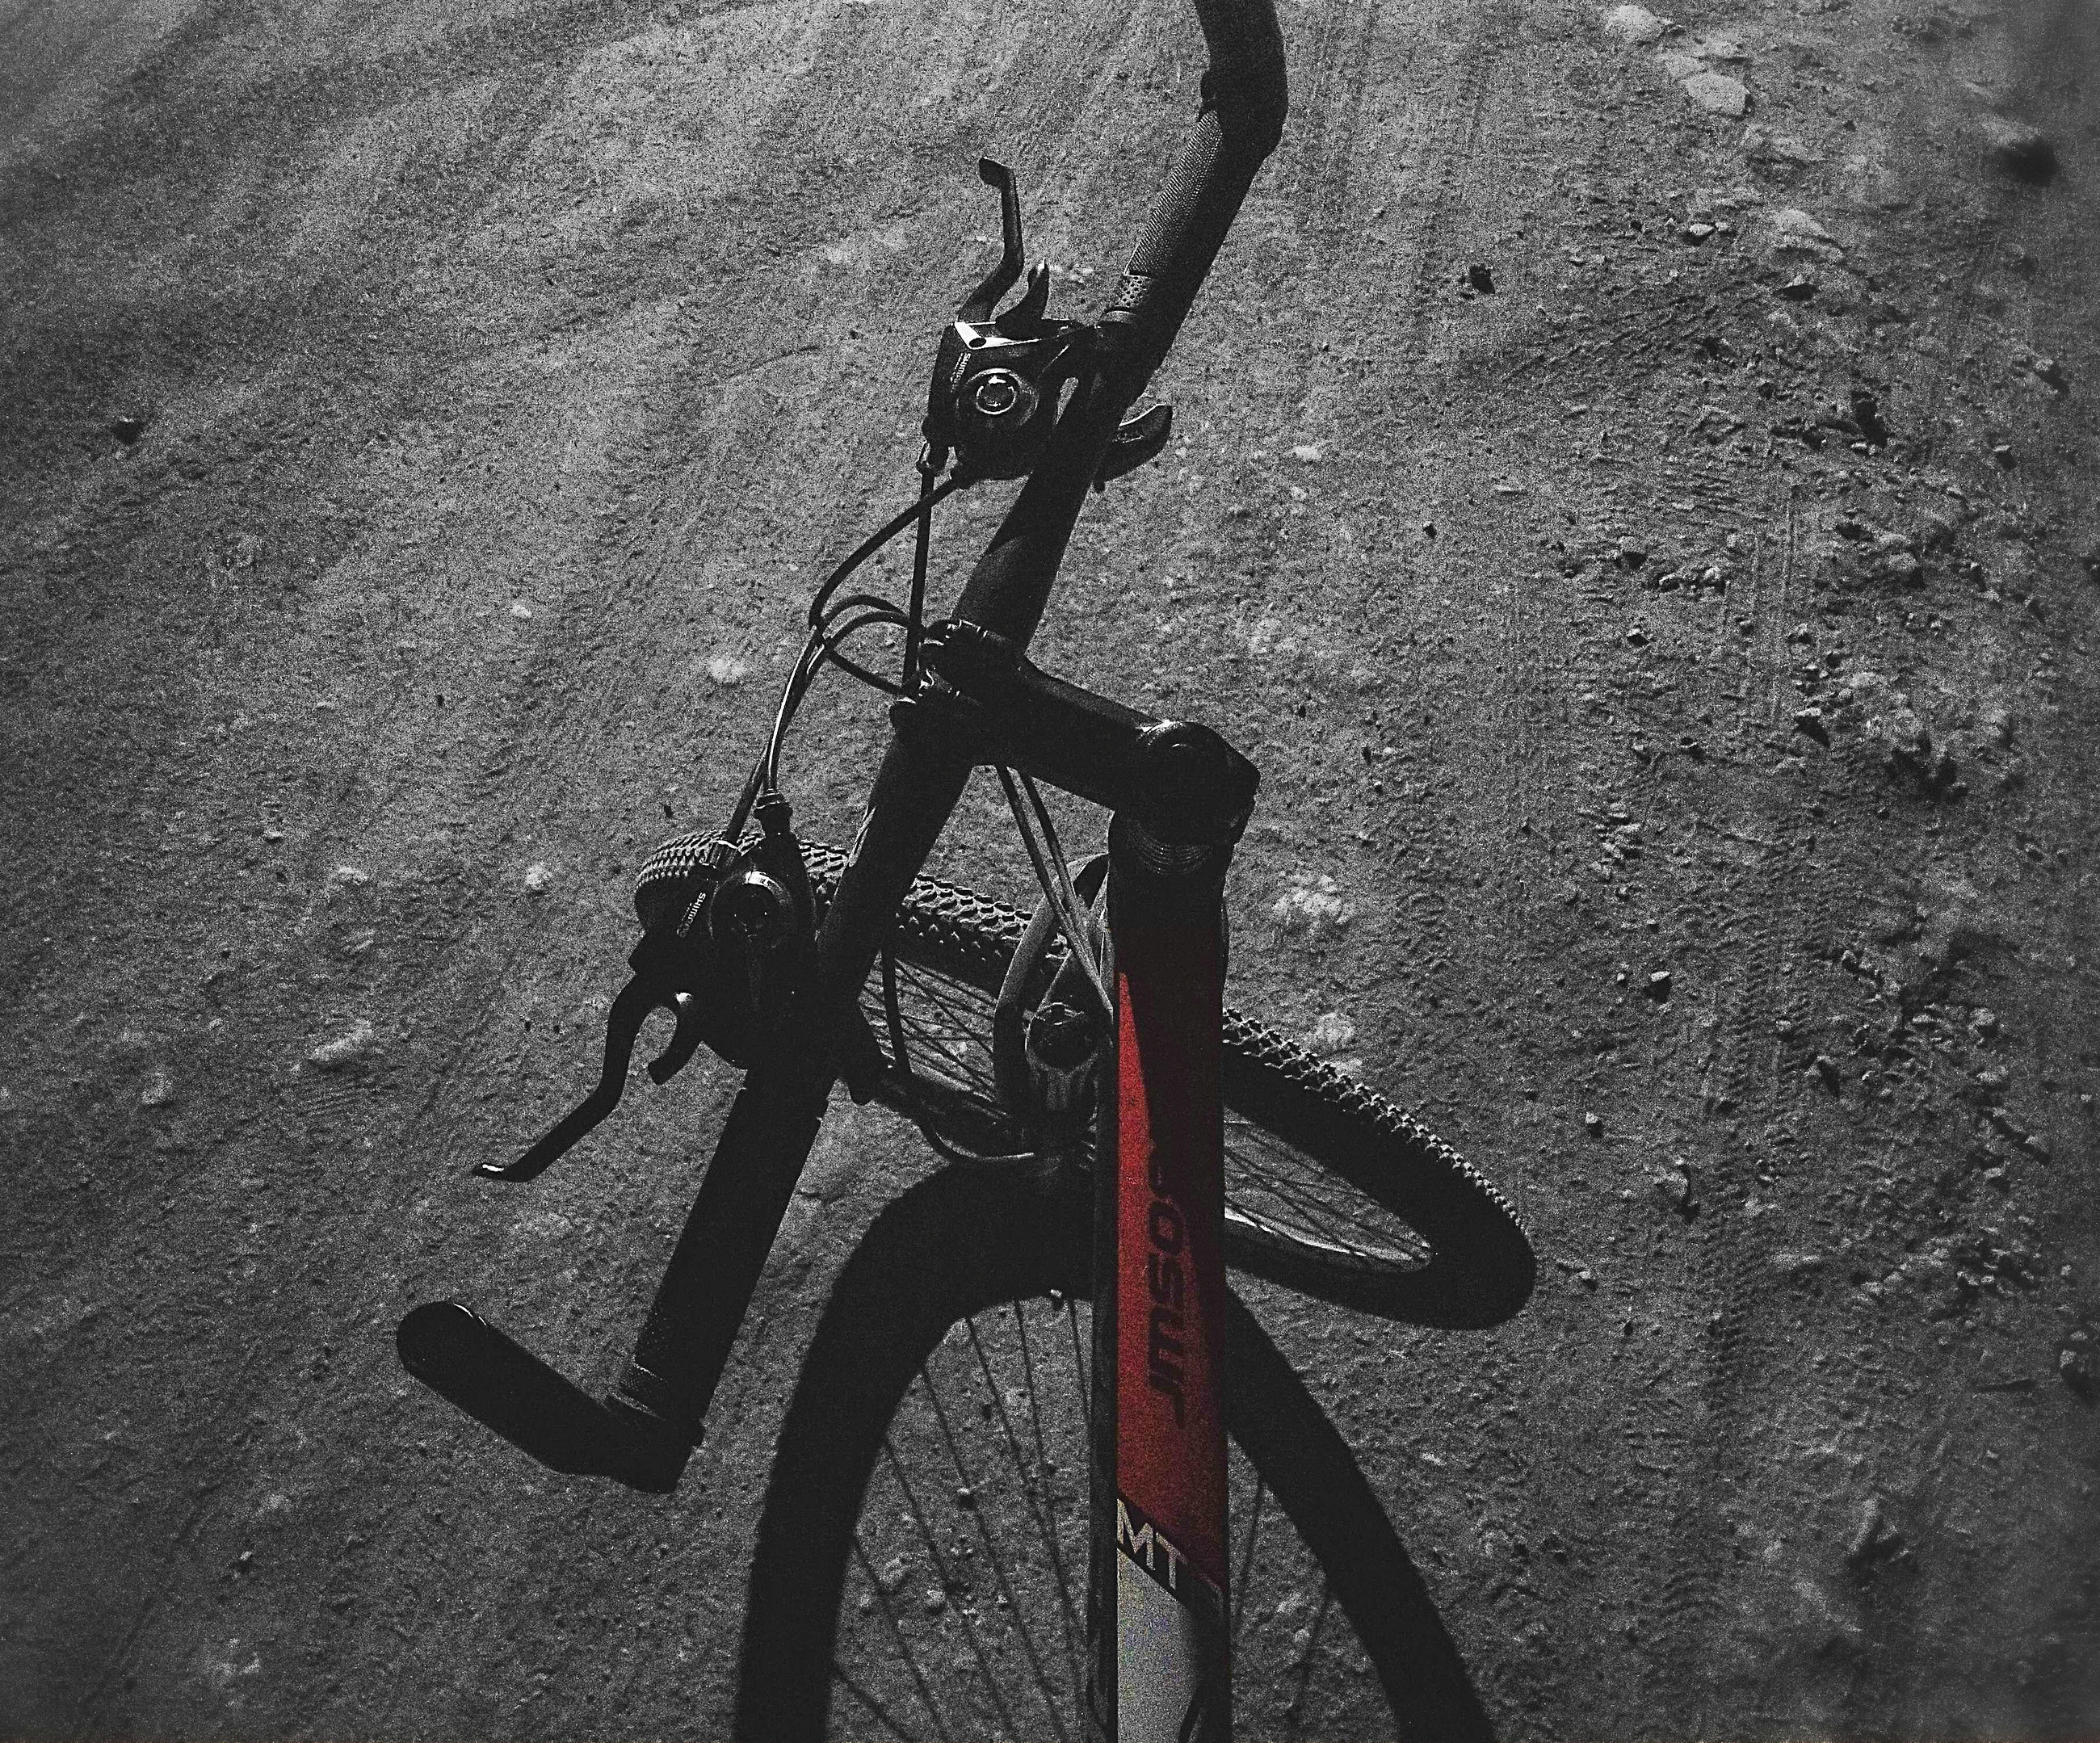 bicycle, transportation, land vehicle, mode of transportation, stationary, no people, high angle view, day, street, road, shadow, sunlight, outdoors, metal, nature, city, footpath, parking, wall - building feature, close-up